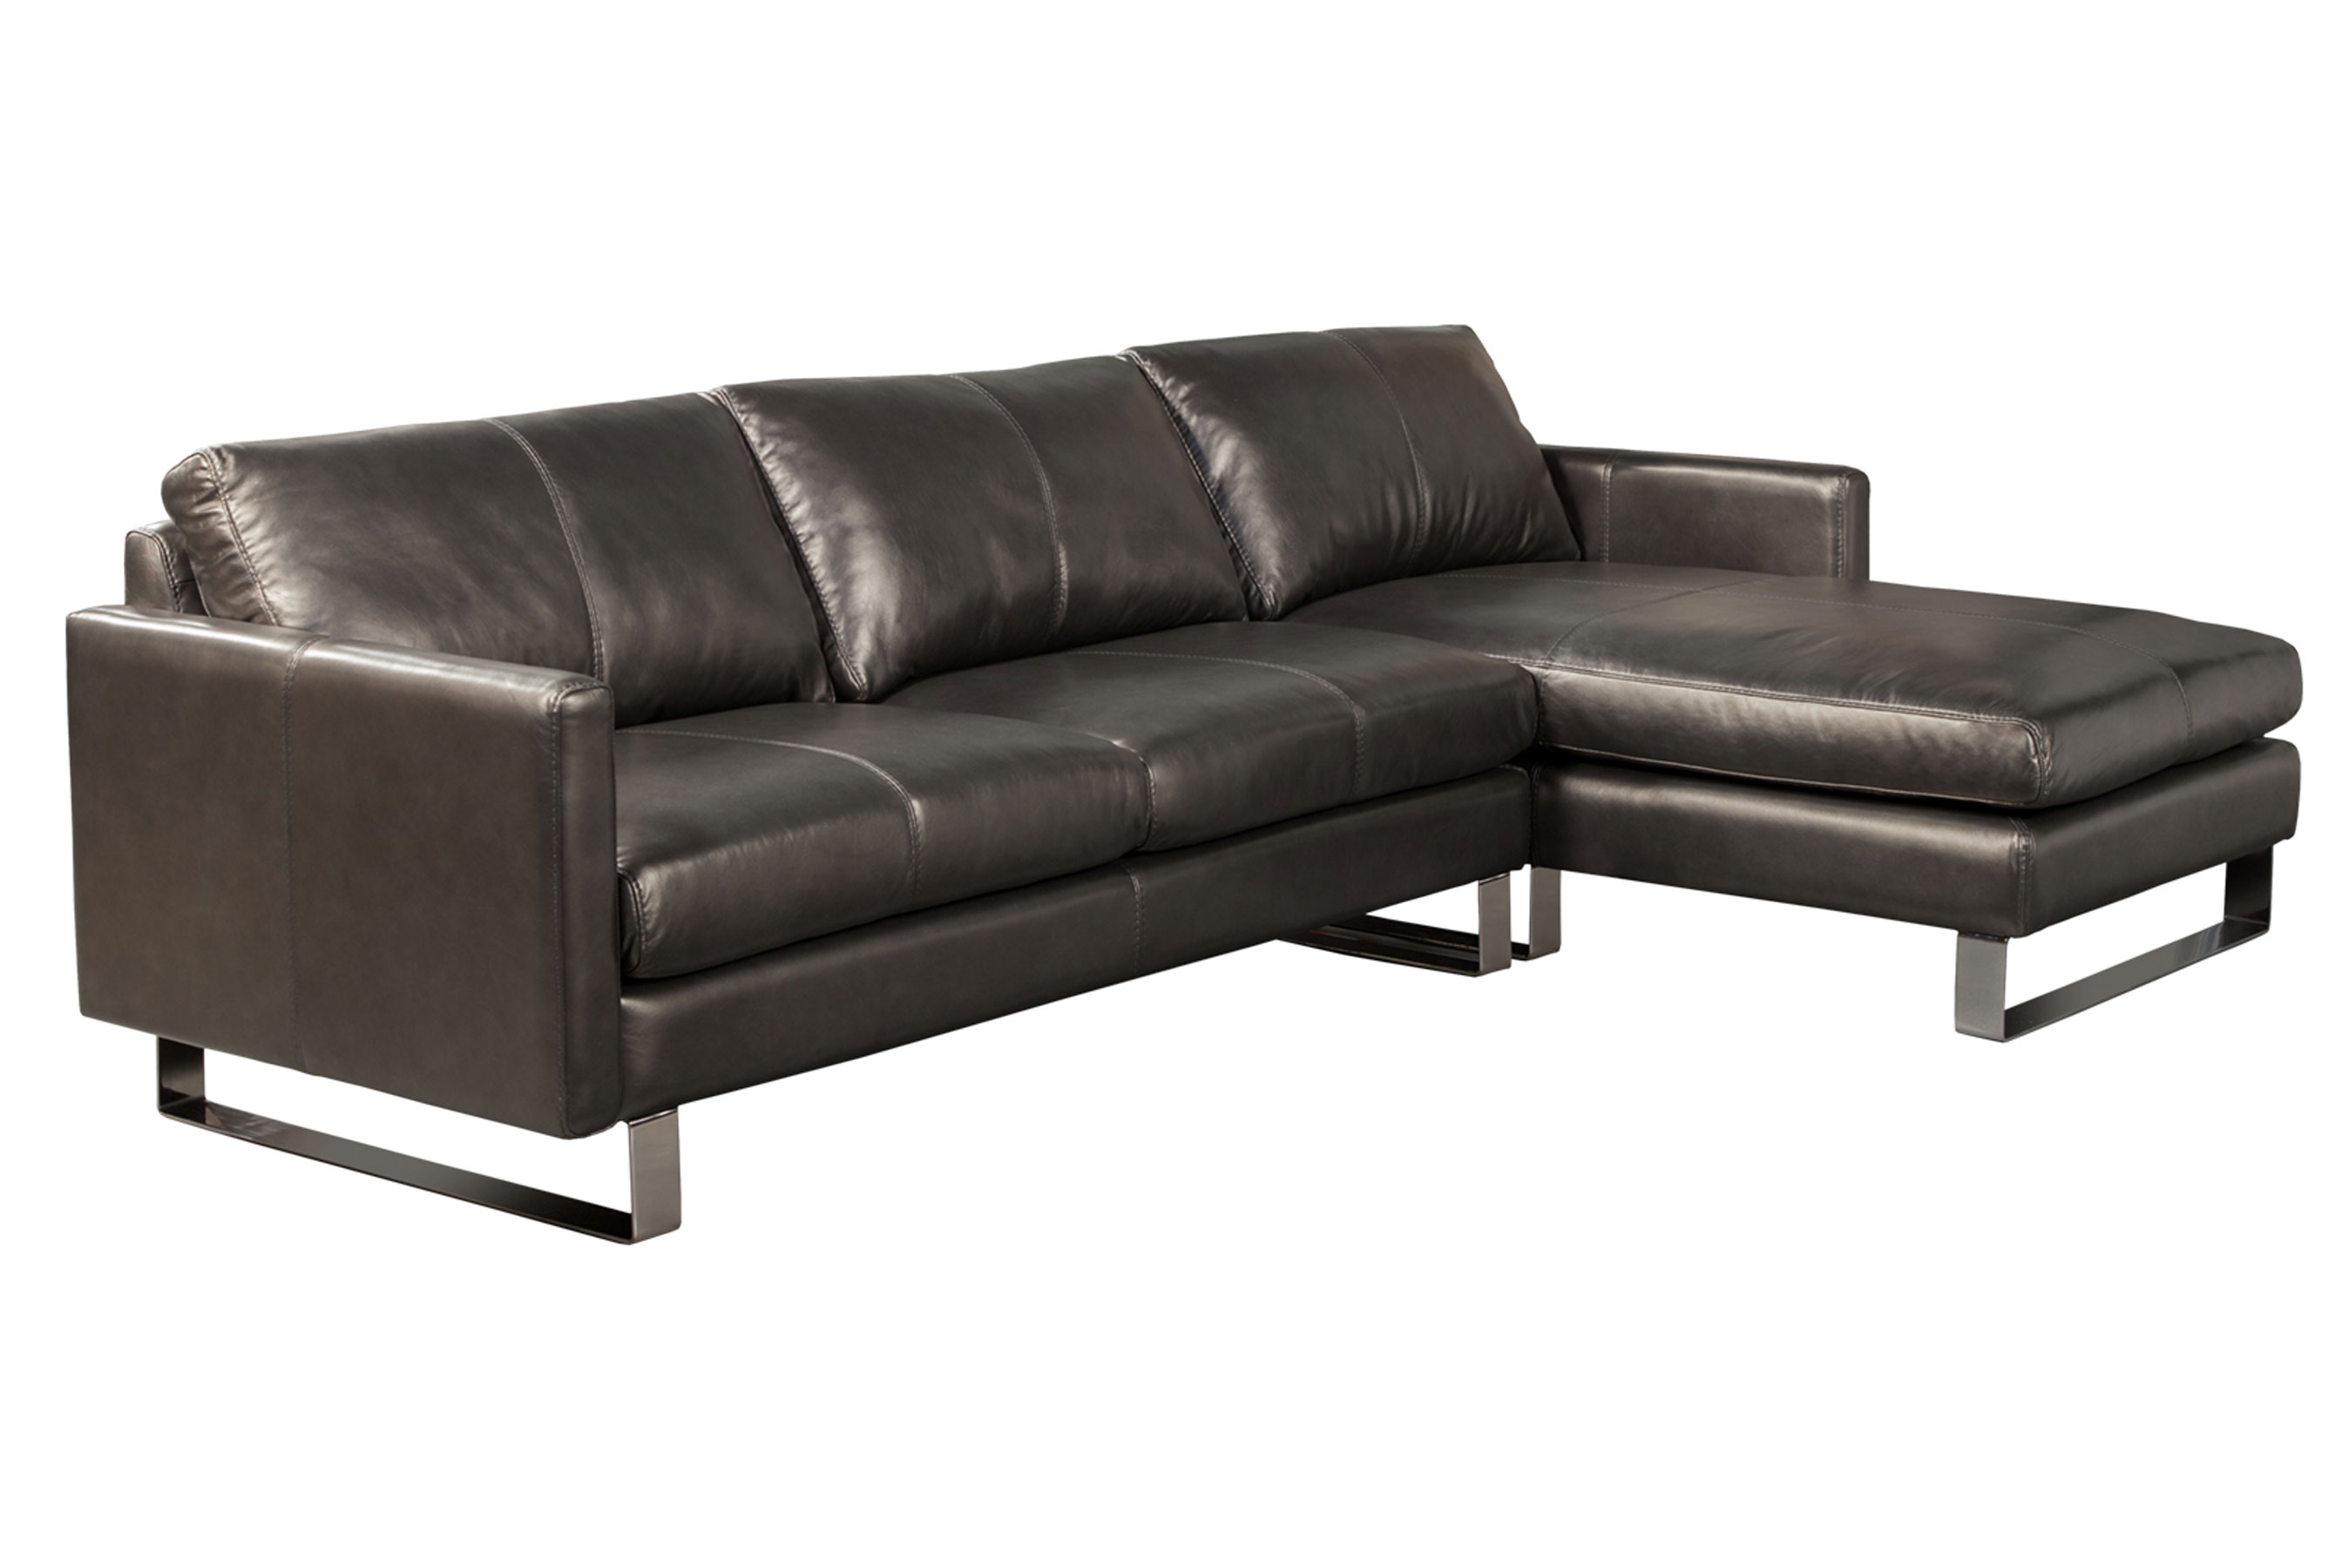 Remarkable Concord Stationary Sectional All Leather Sofas And Ocoug Best Dining Table And Chair Ideas Images Ocougorg